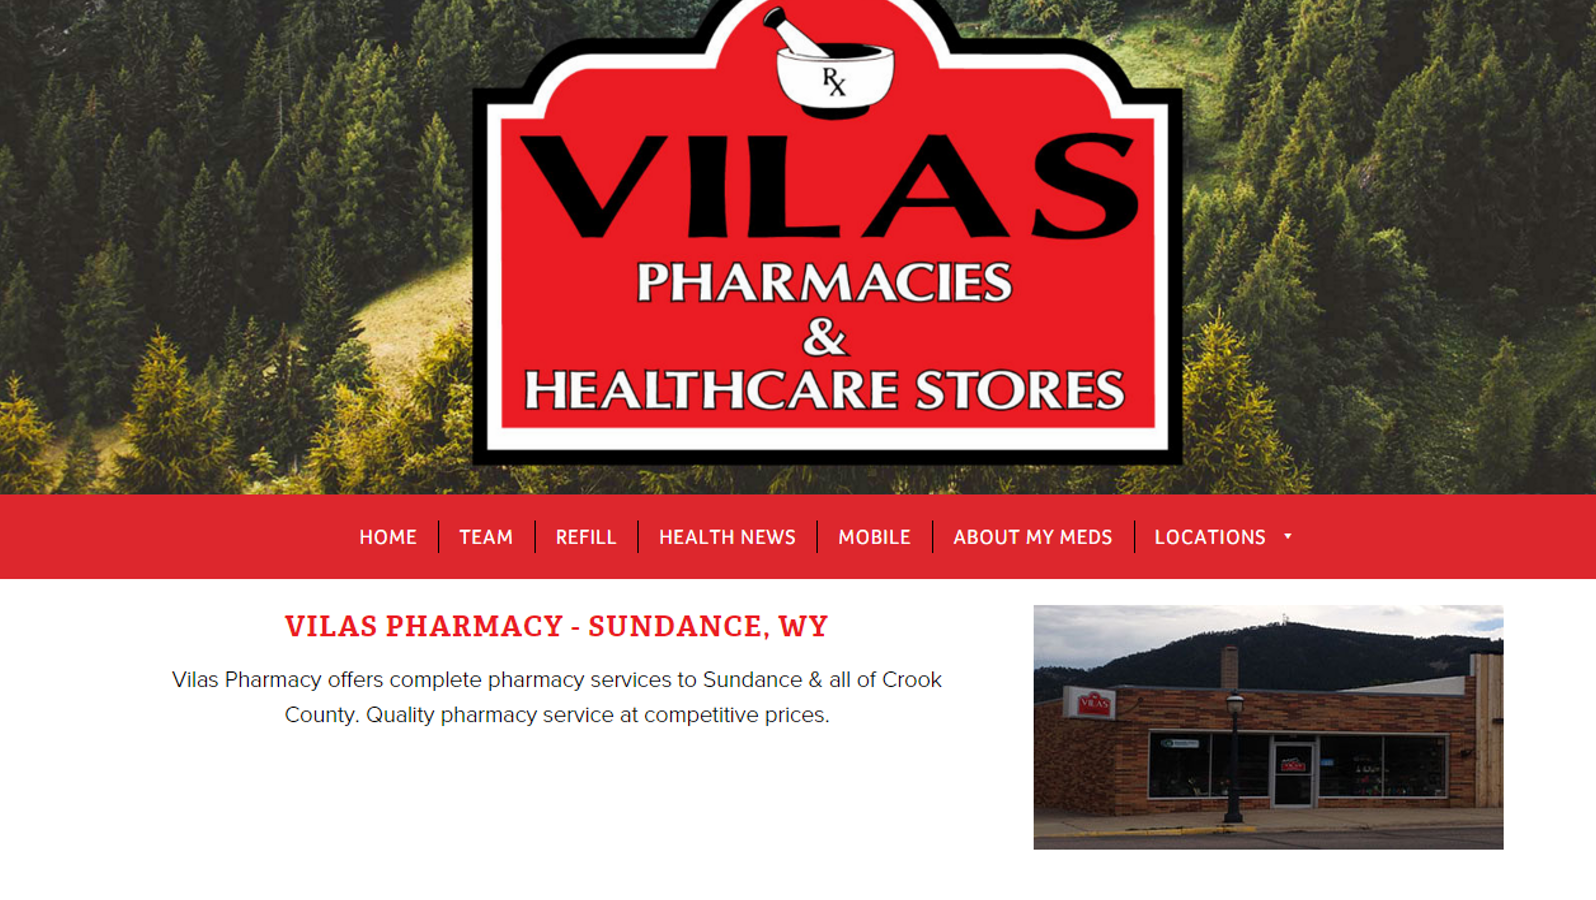 Vilas Pharmacy and Gifts